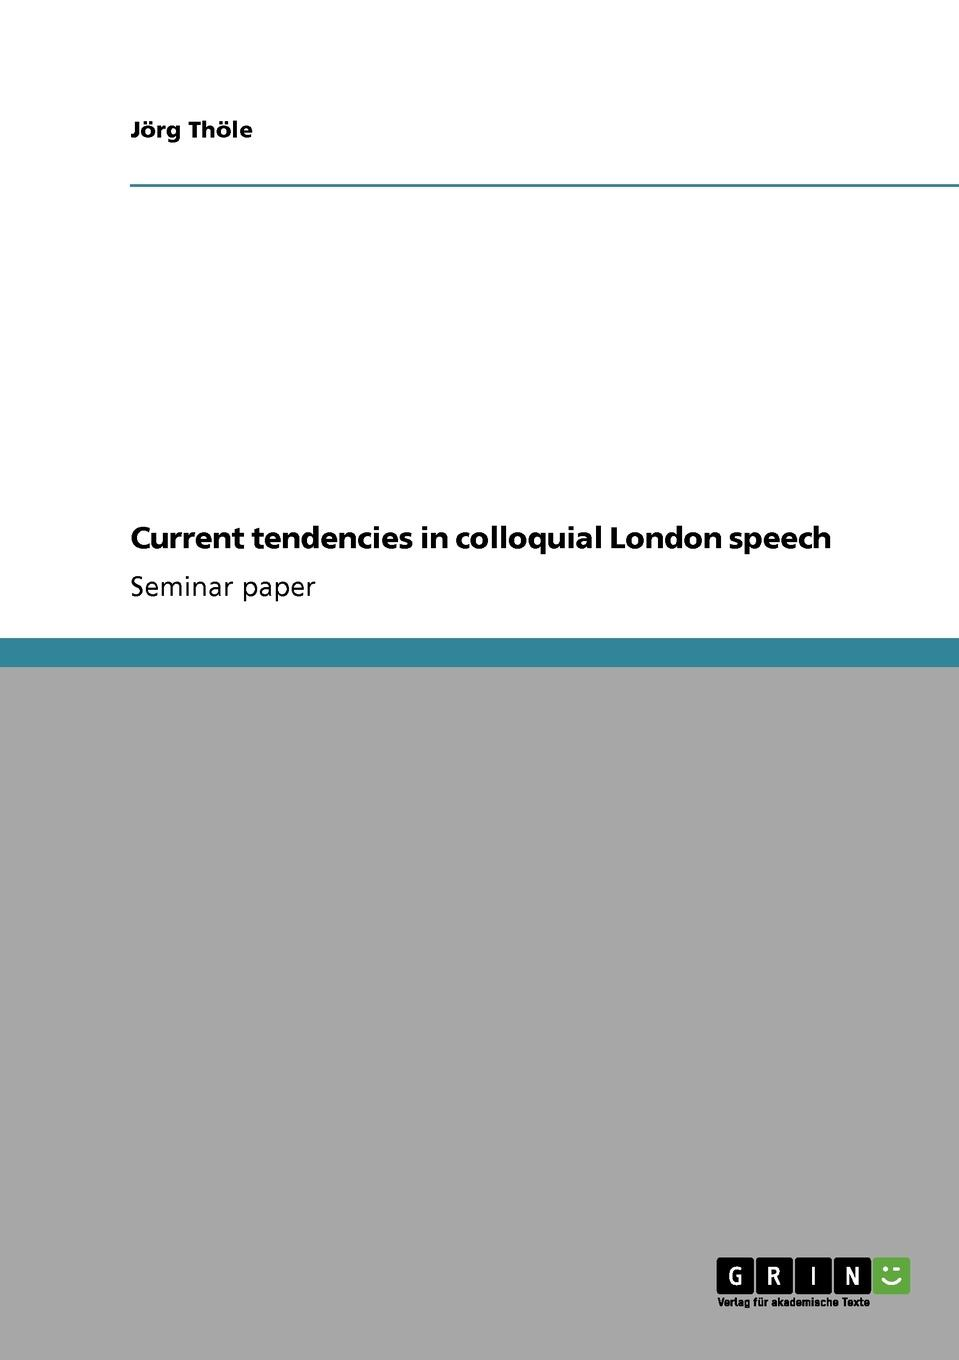 Jörg Thöle Current tendencies in colloquial London speech william bullokar bullokars booke at large for the amendment of orthographie for english speech